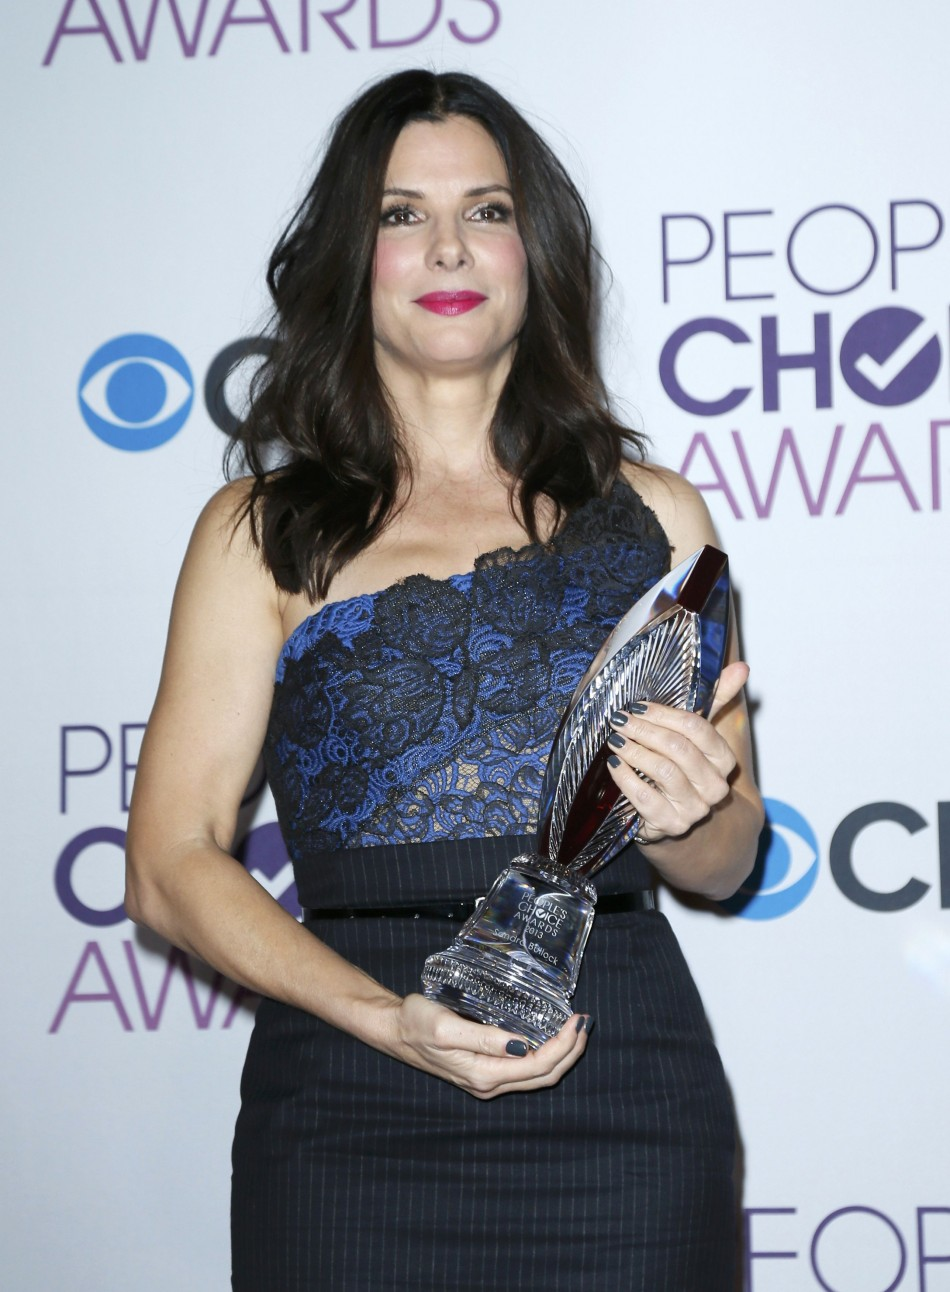 Actress Sandra Bullock poses backstage after being honored with the favorite humanitarian award at the 2013 People's Choice Awards in Los Angeles